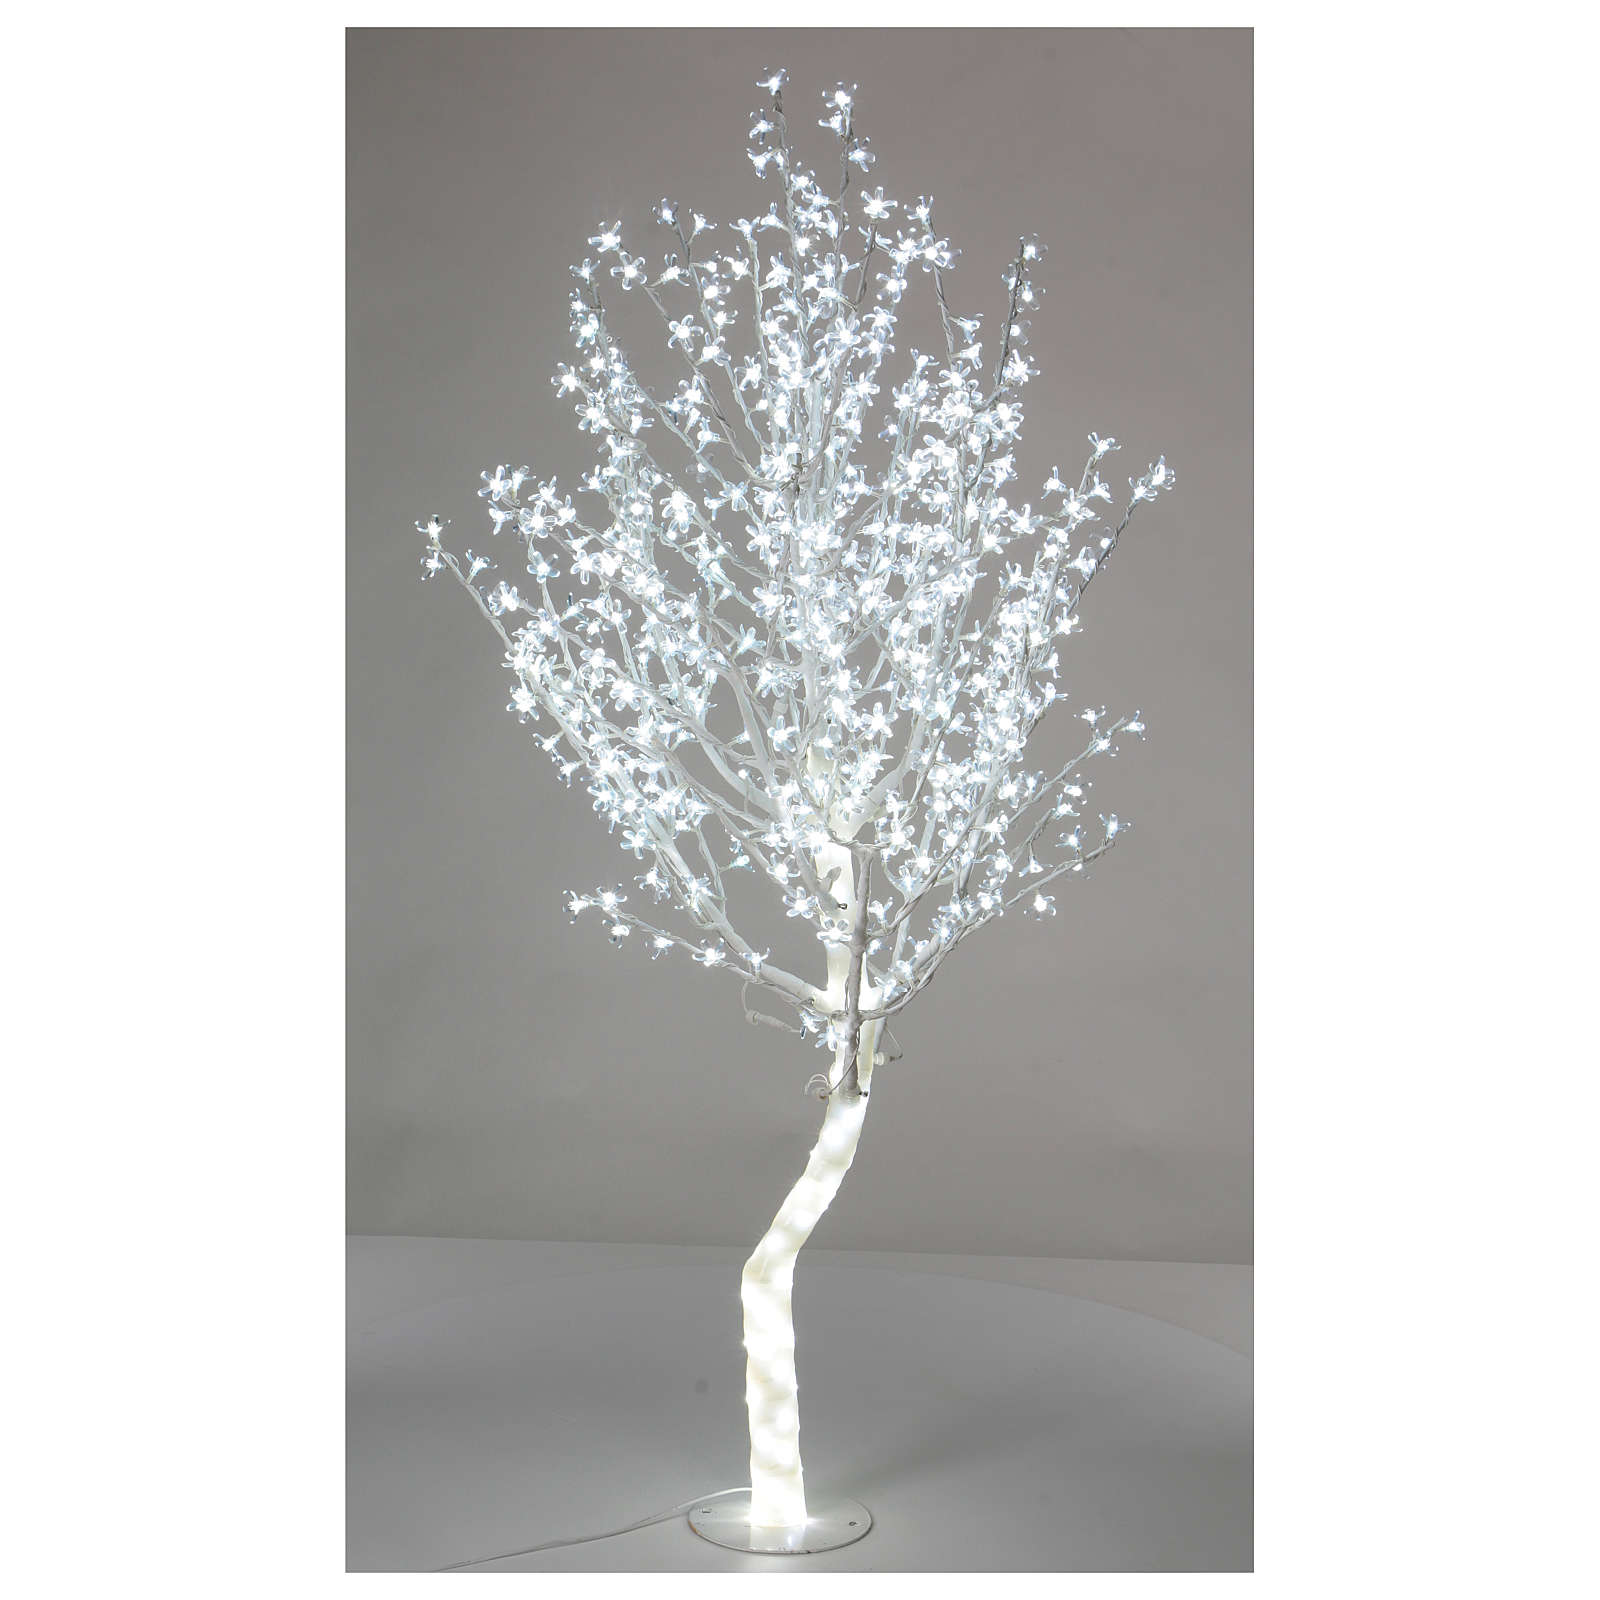 Cherry blossom light tree, 180 cm, 600 LEDS cold white outdoor 3